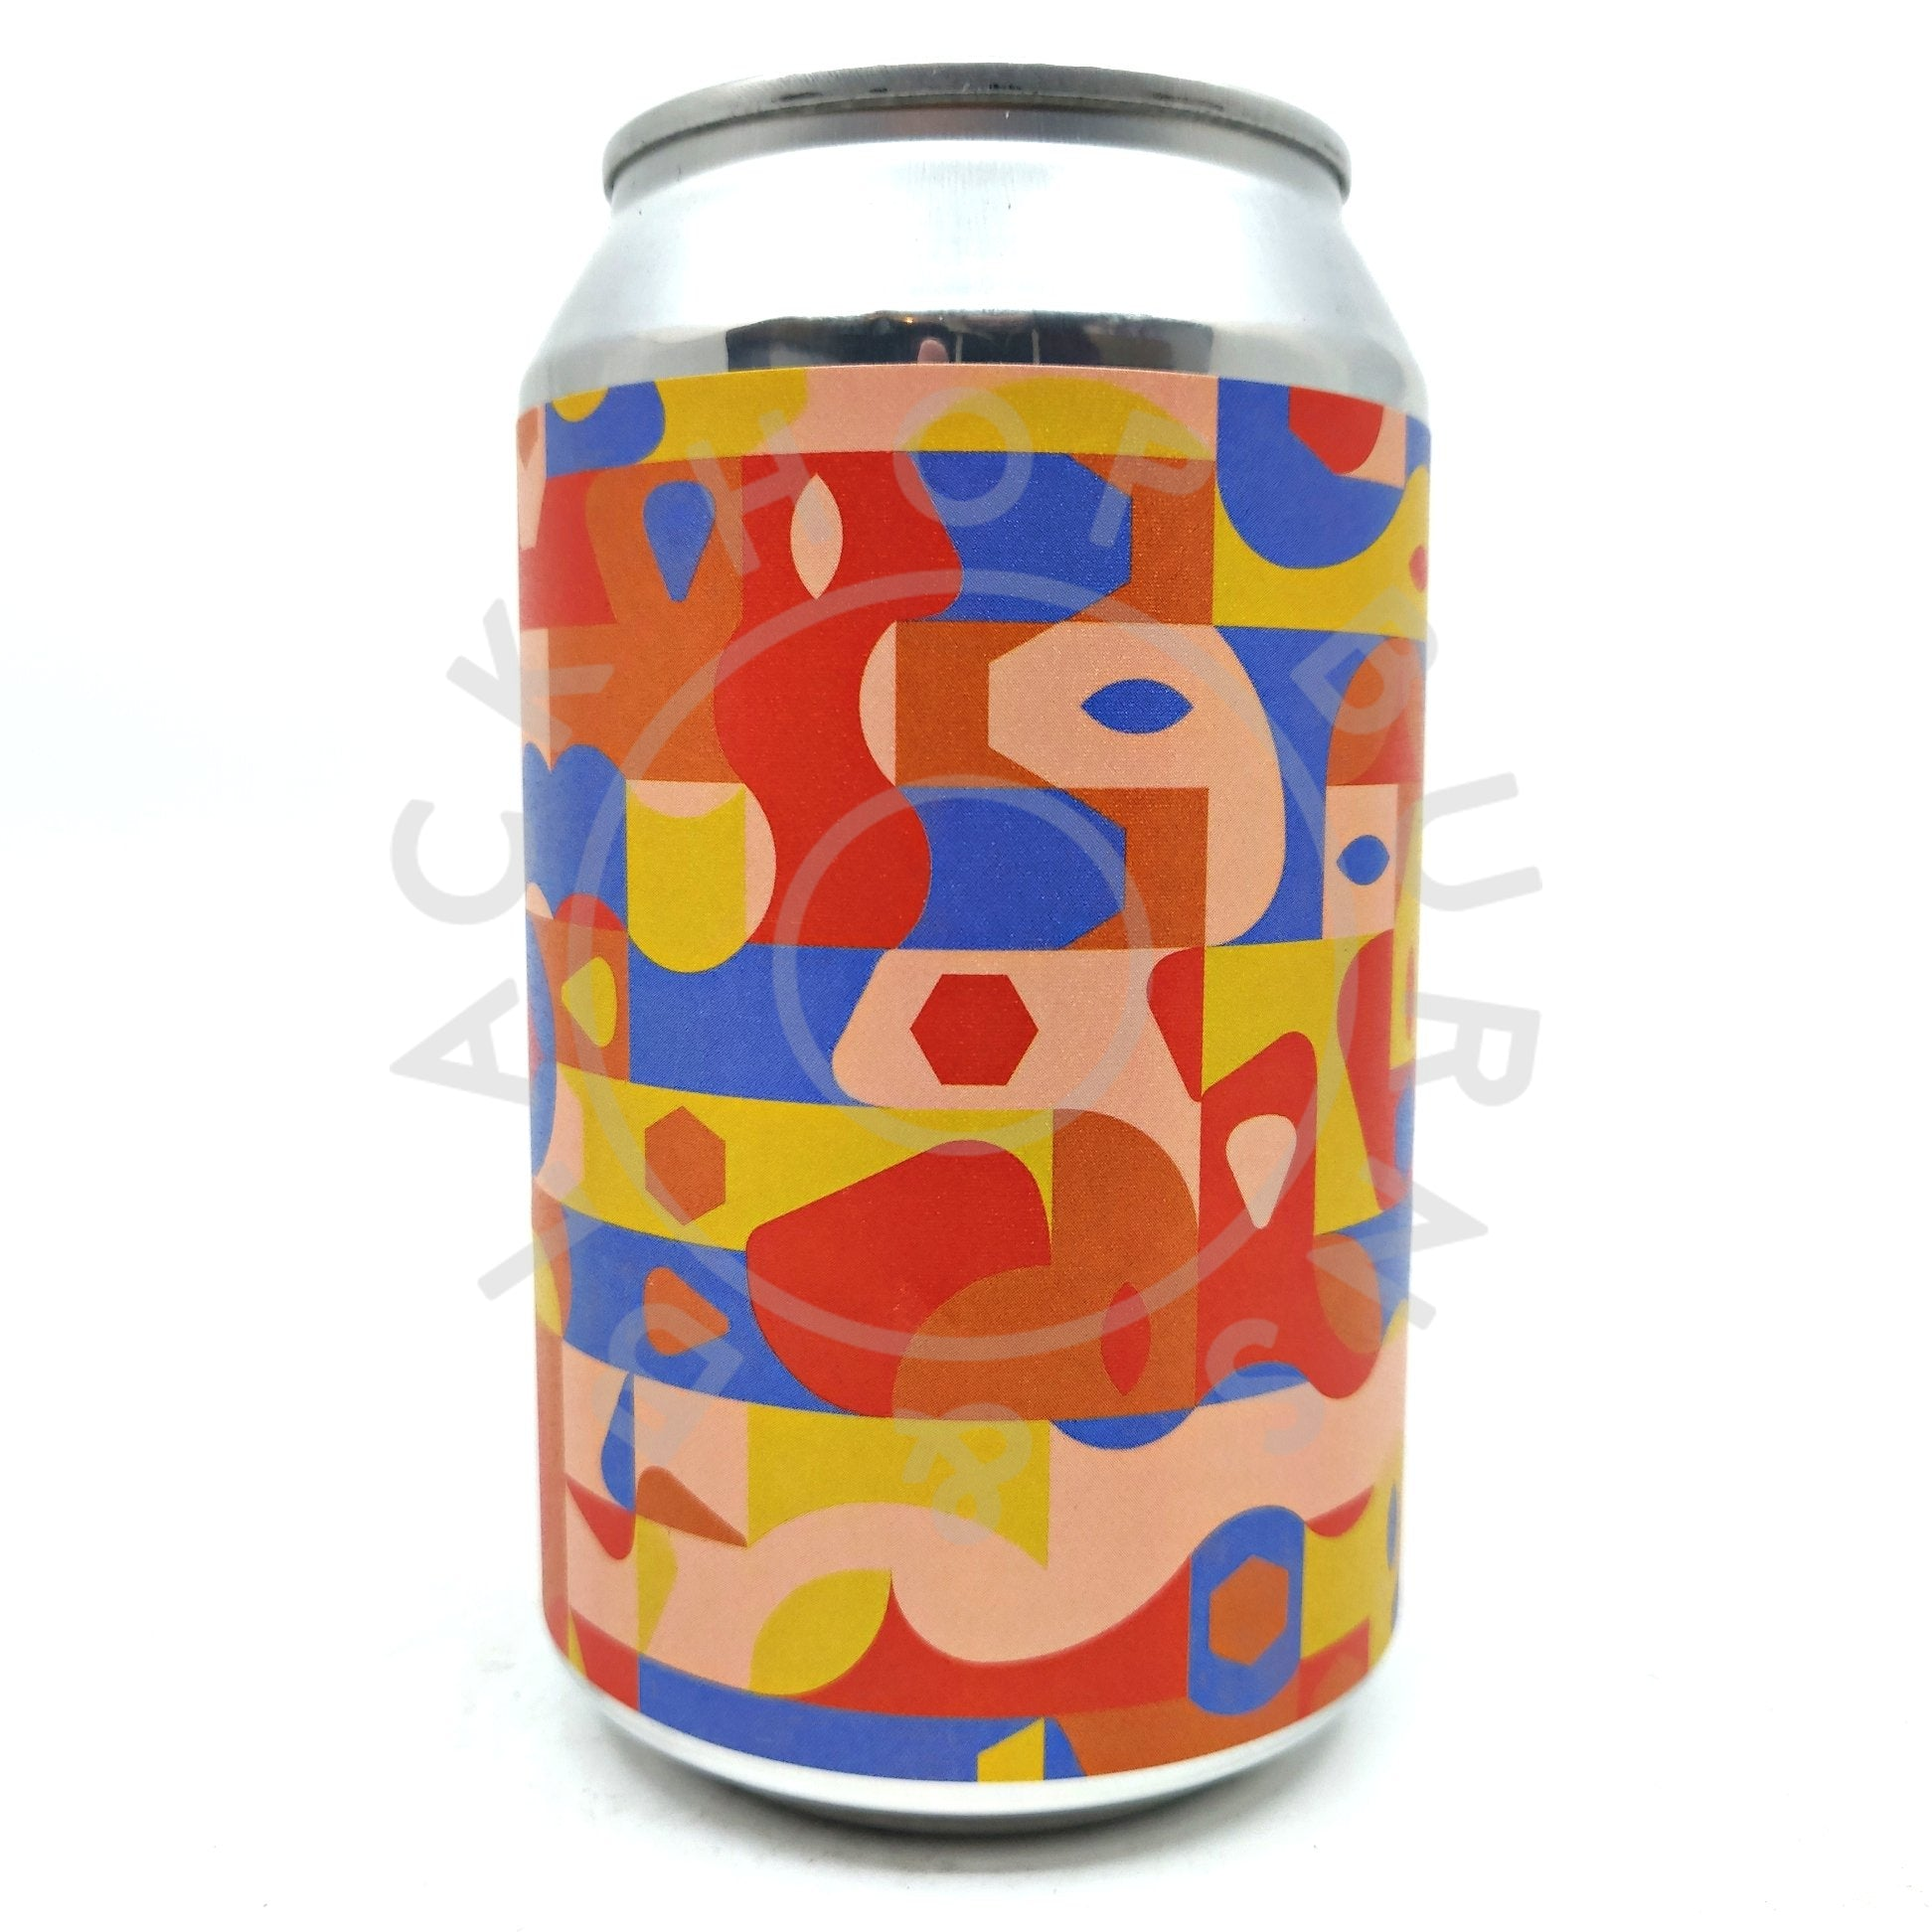 Brick Brewery x Brewgooder Wild Flower Rustic Sour Ale 3.9% (330ml can)-Hop Burns & Black